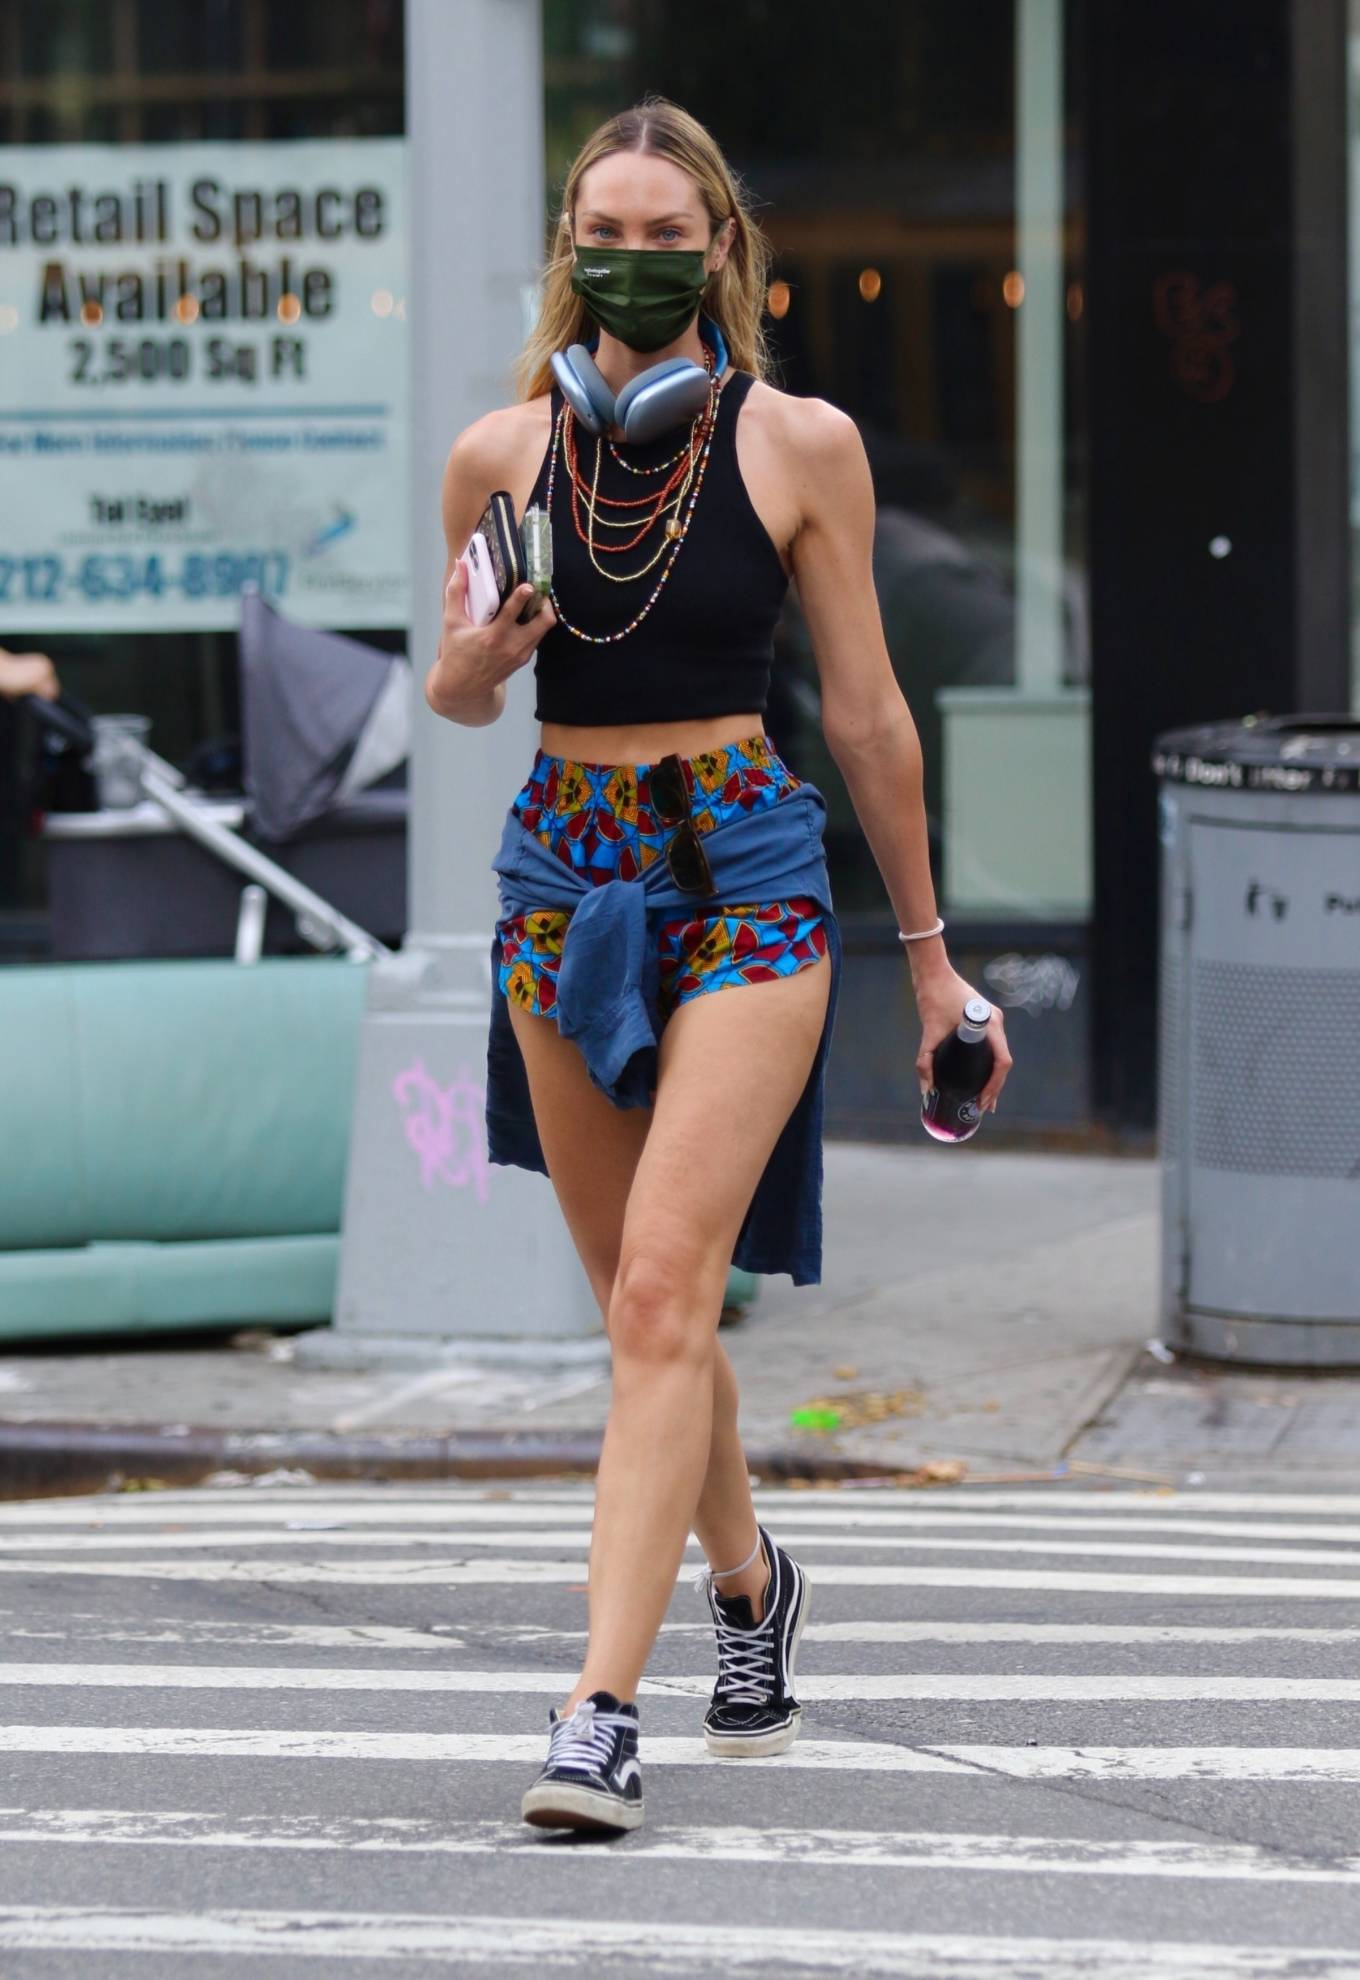 Candice Swanepoel rocking round black Vans lace-up sneakers with flat heel